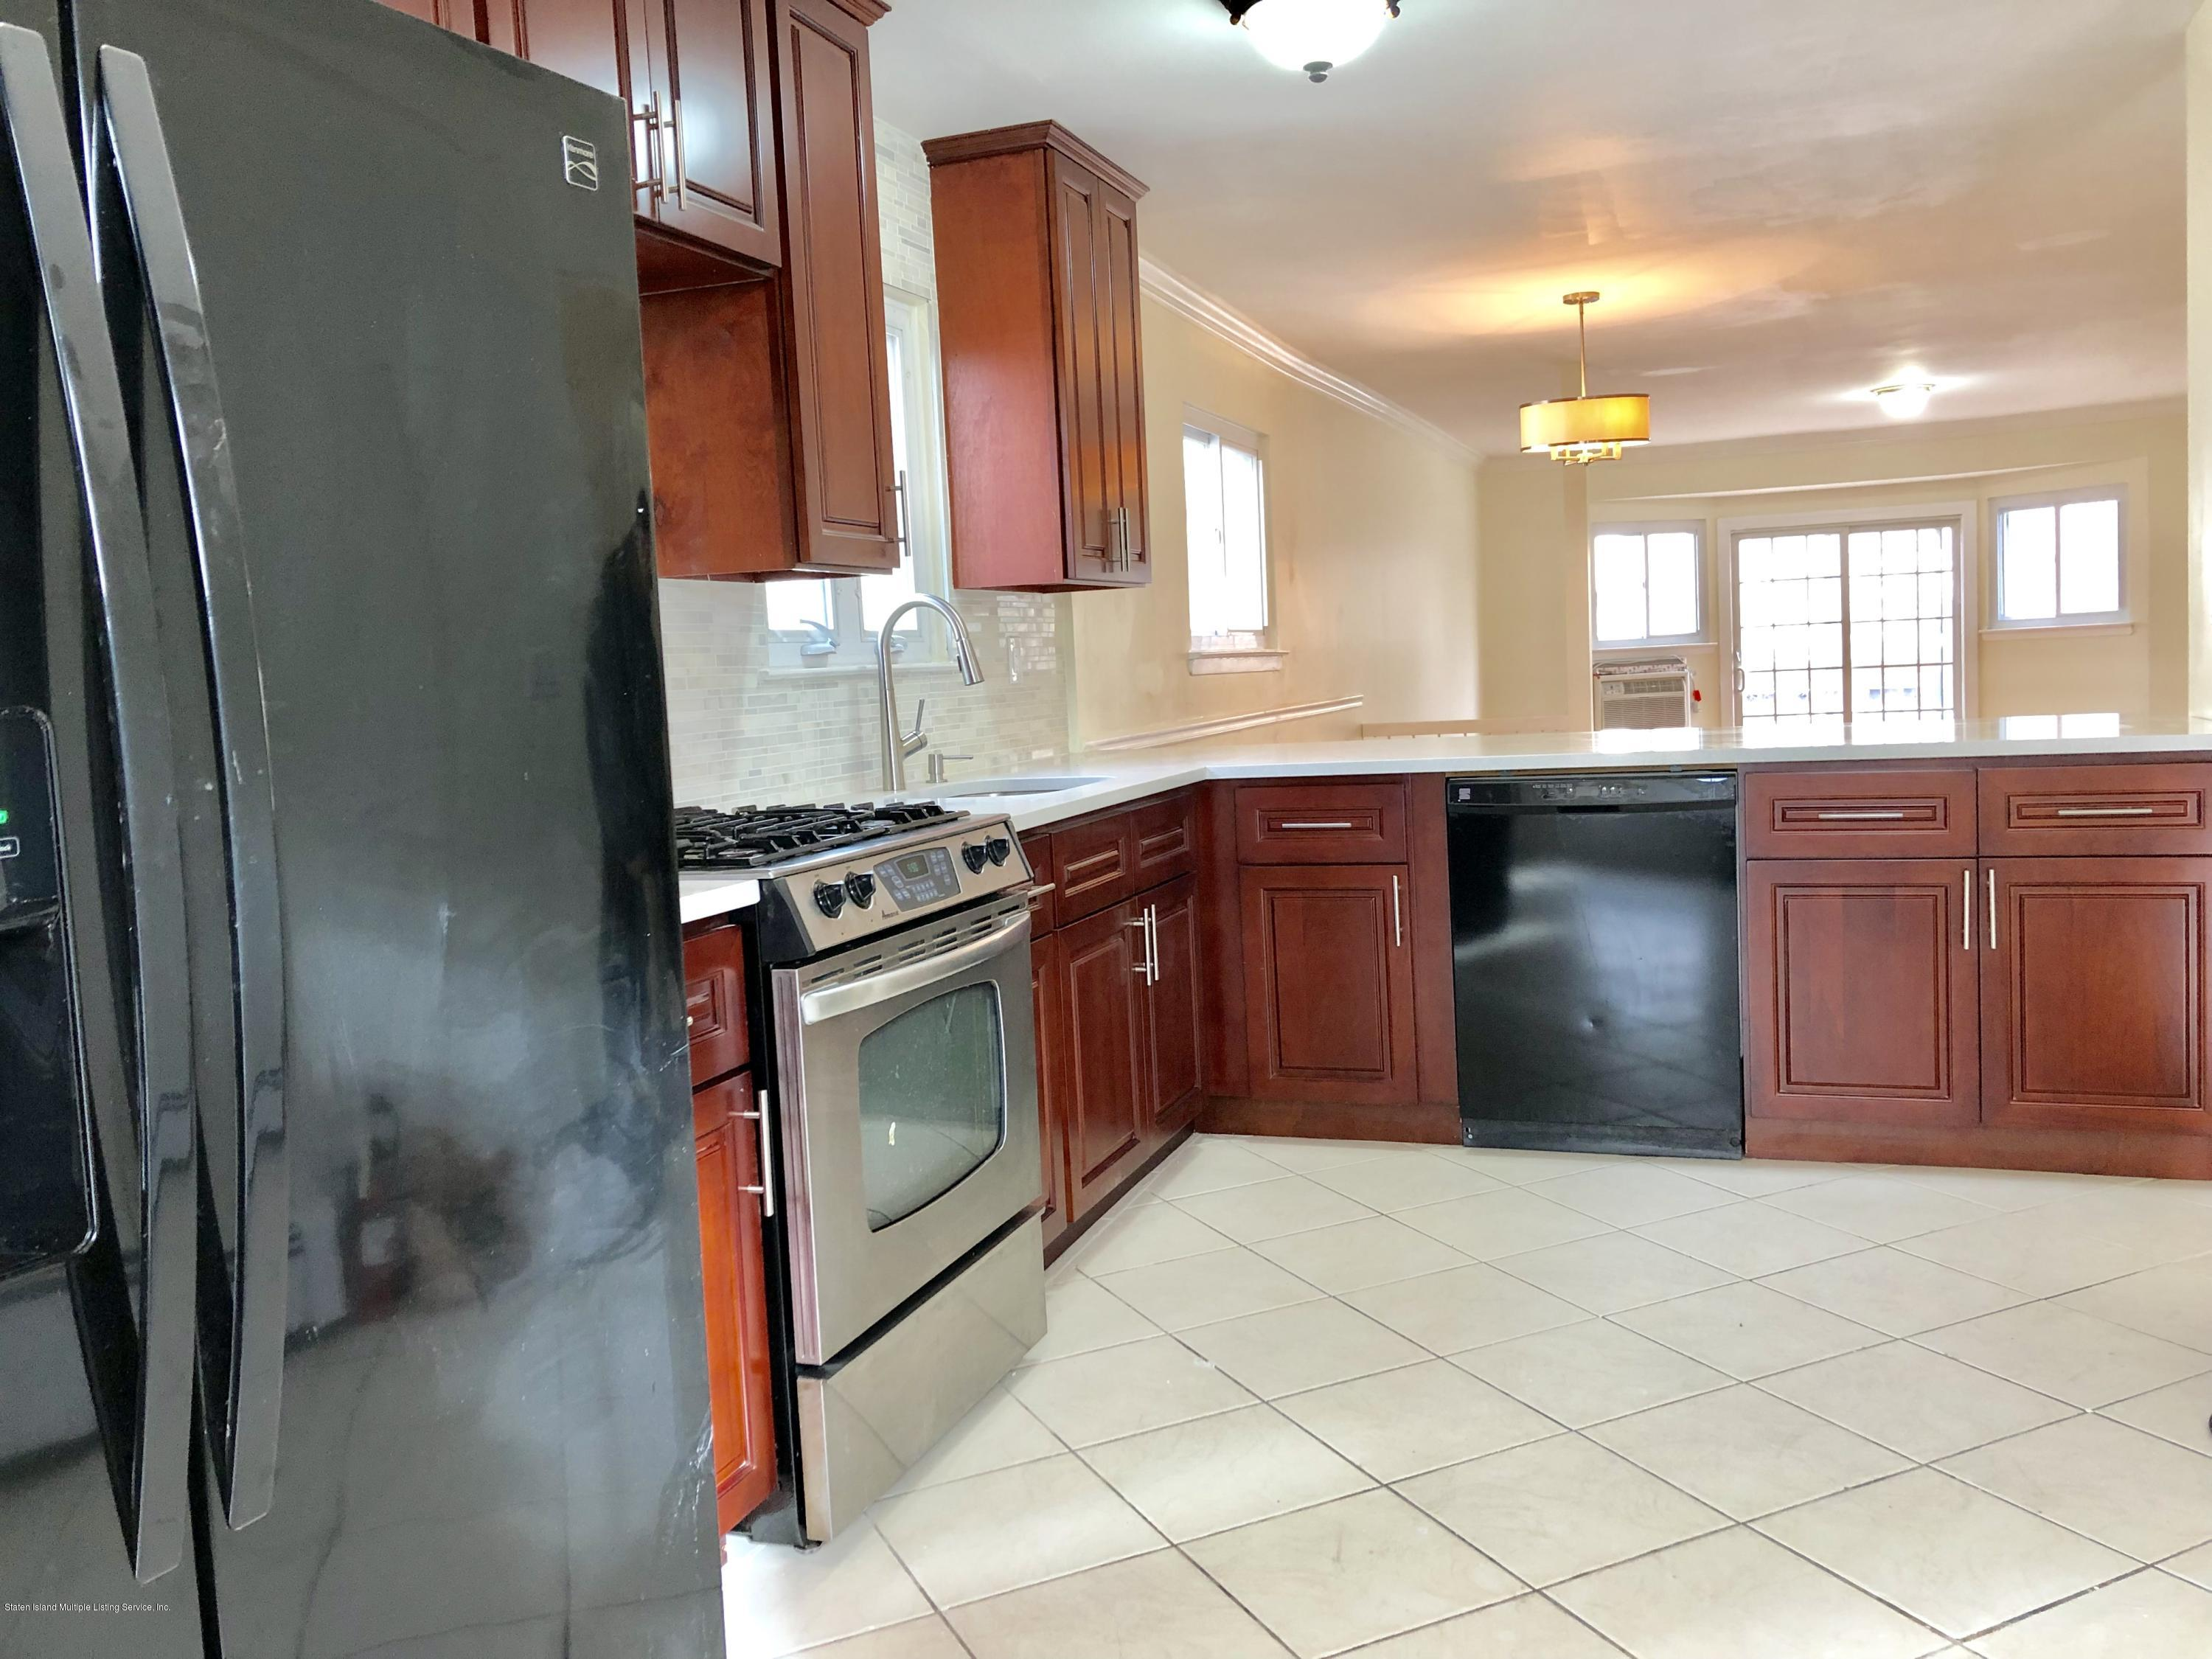 Single Family - Semi-Attached 205 Mcveigh Avenue  Staten Island, NY 10314, MLS-1123847-4